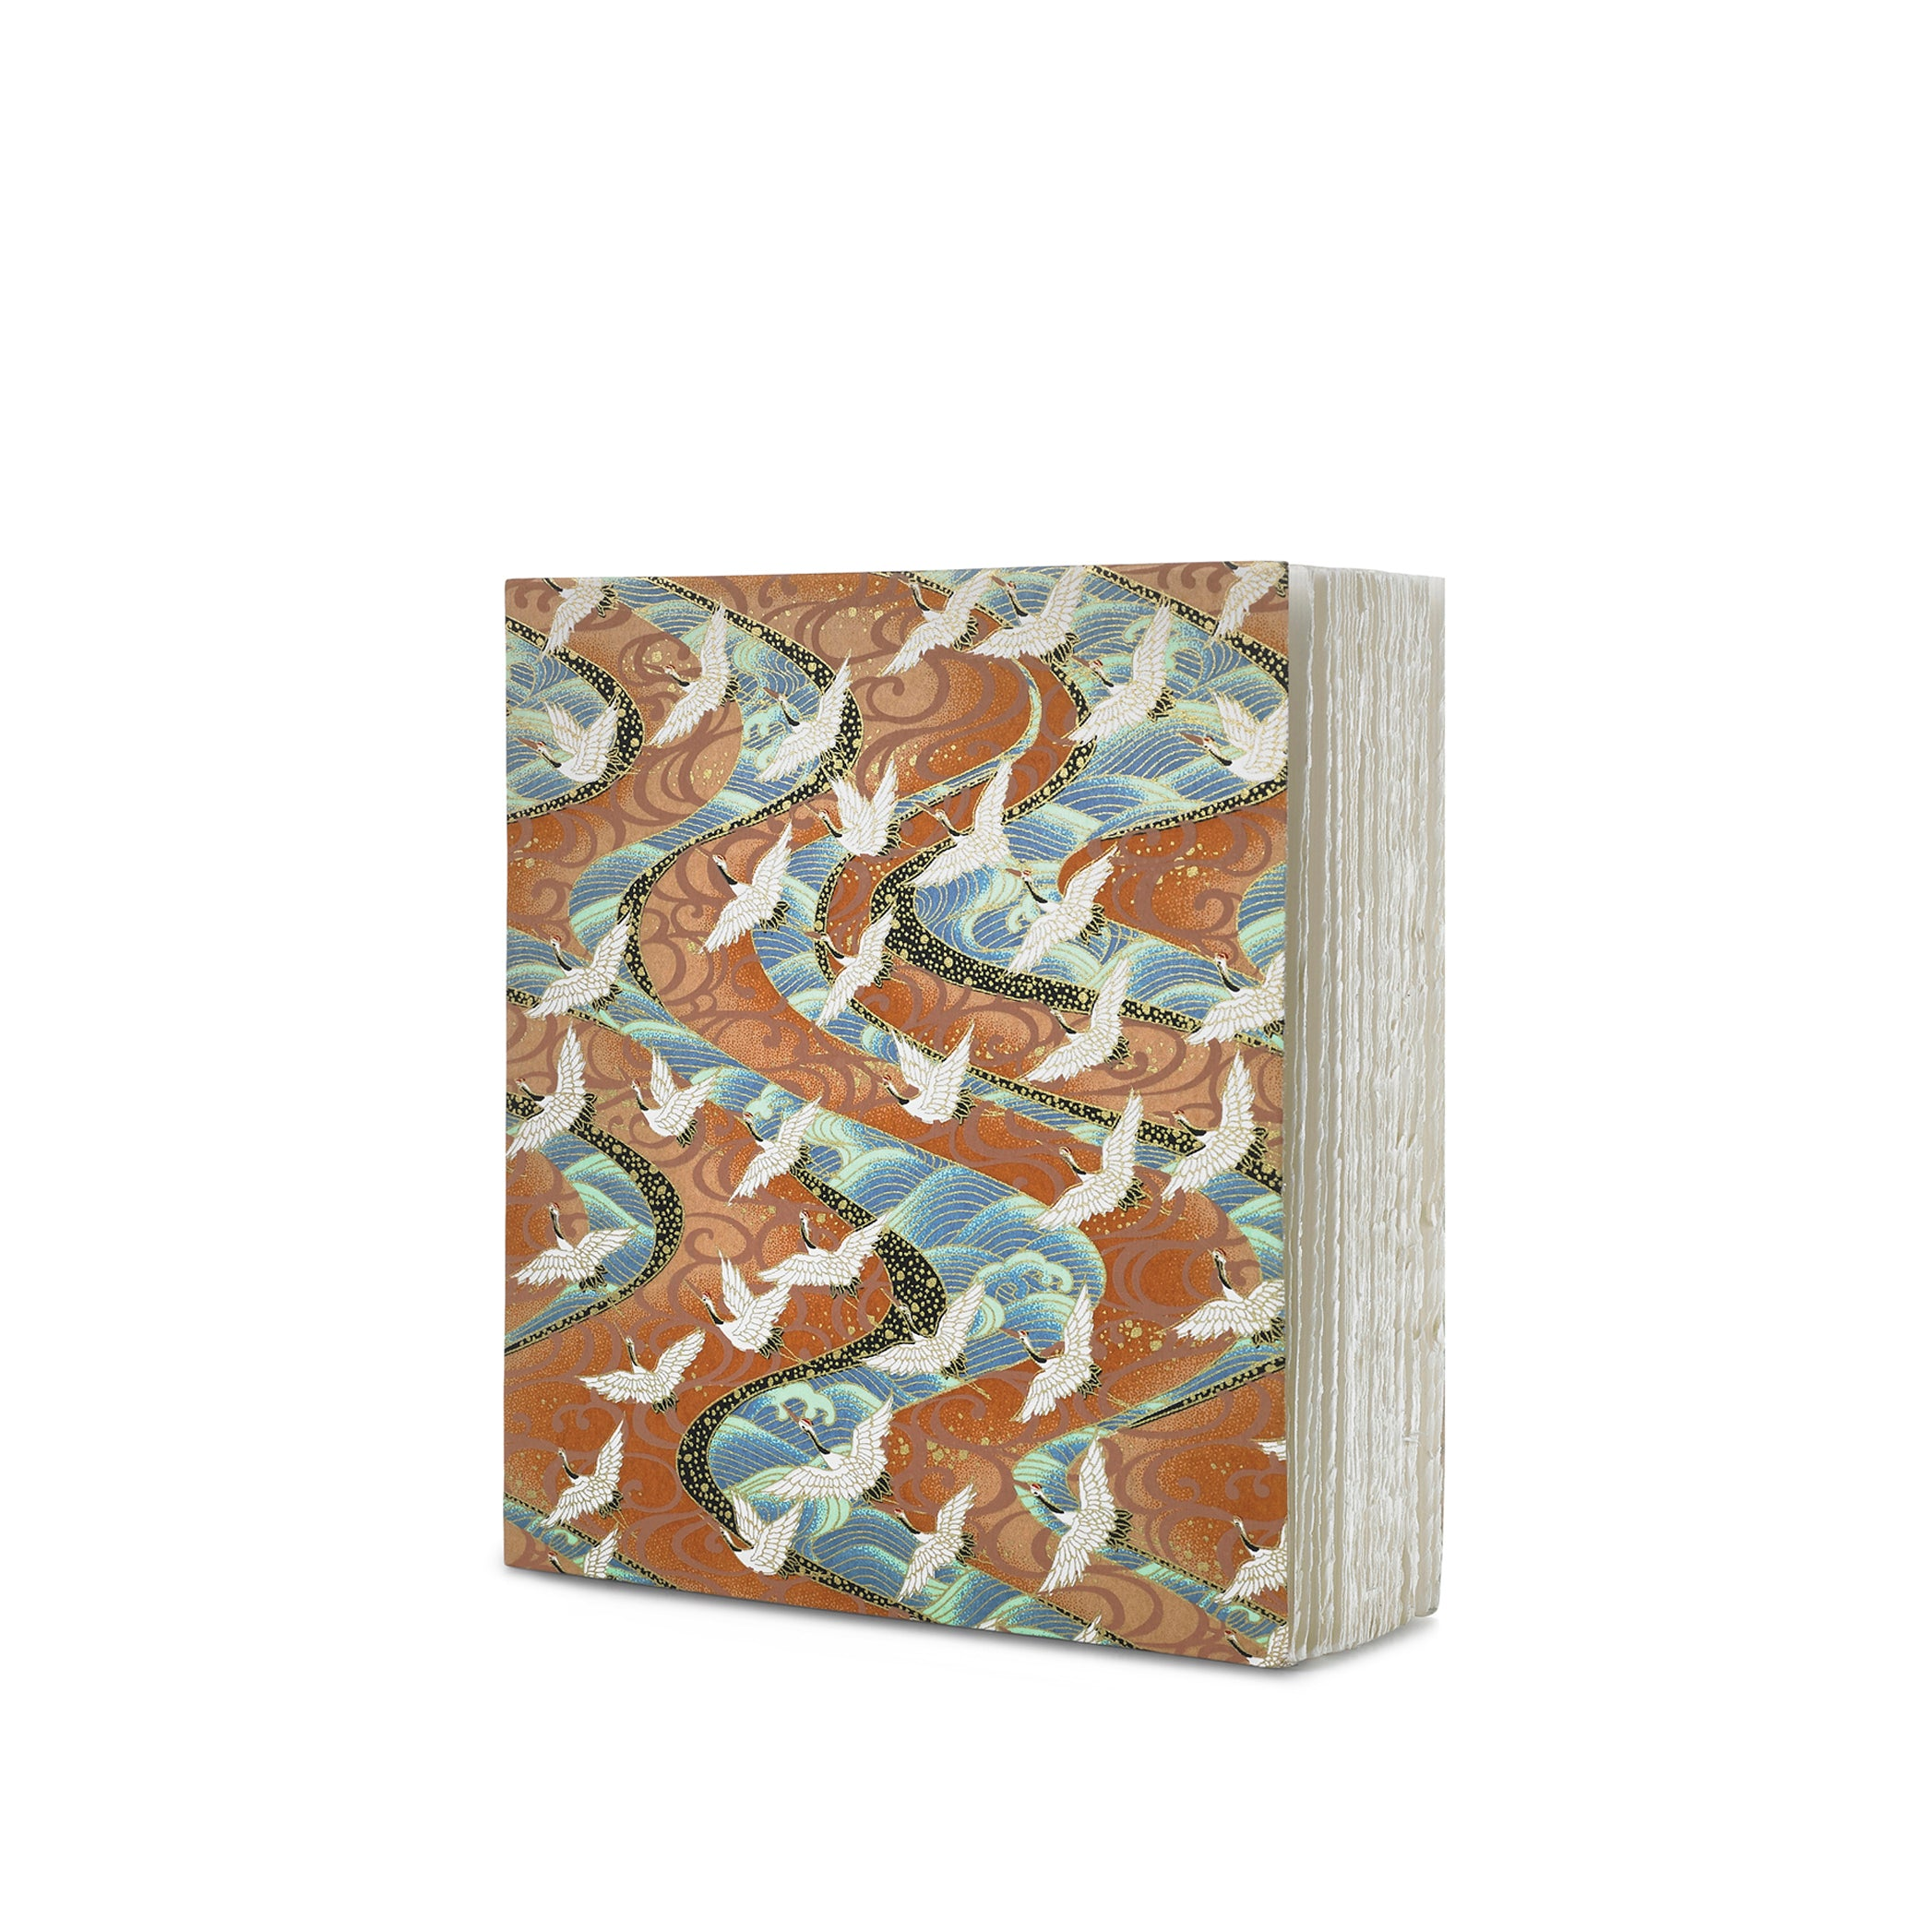 Handprinted Japanese Chiyogami Covered Sketchbook, Birds on Gold Background